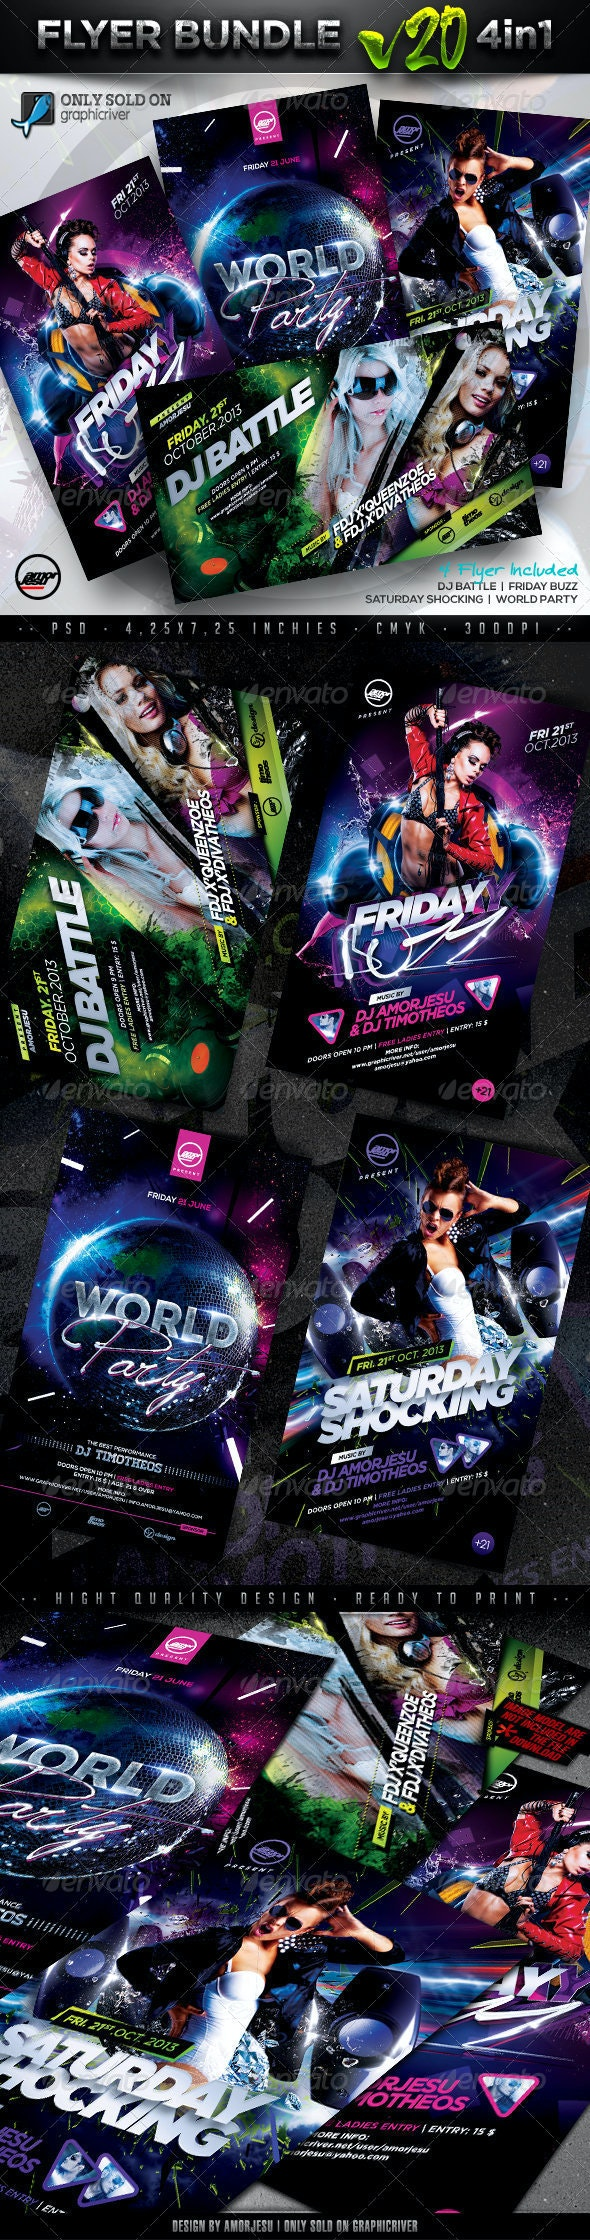 Flyer Bundle Vol20 - 4 in 1 - Clubs & Parties Events